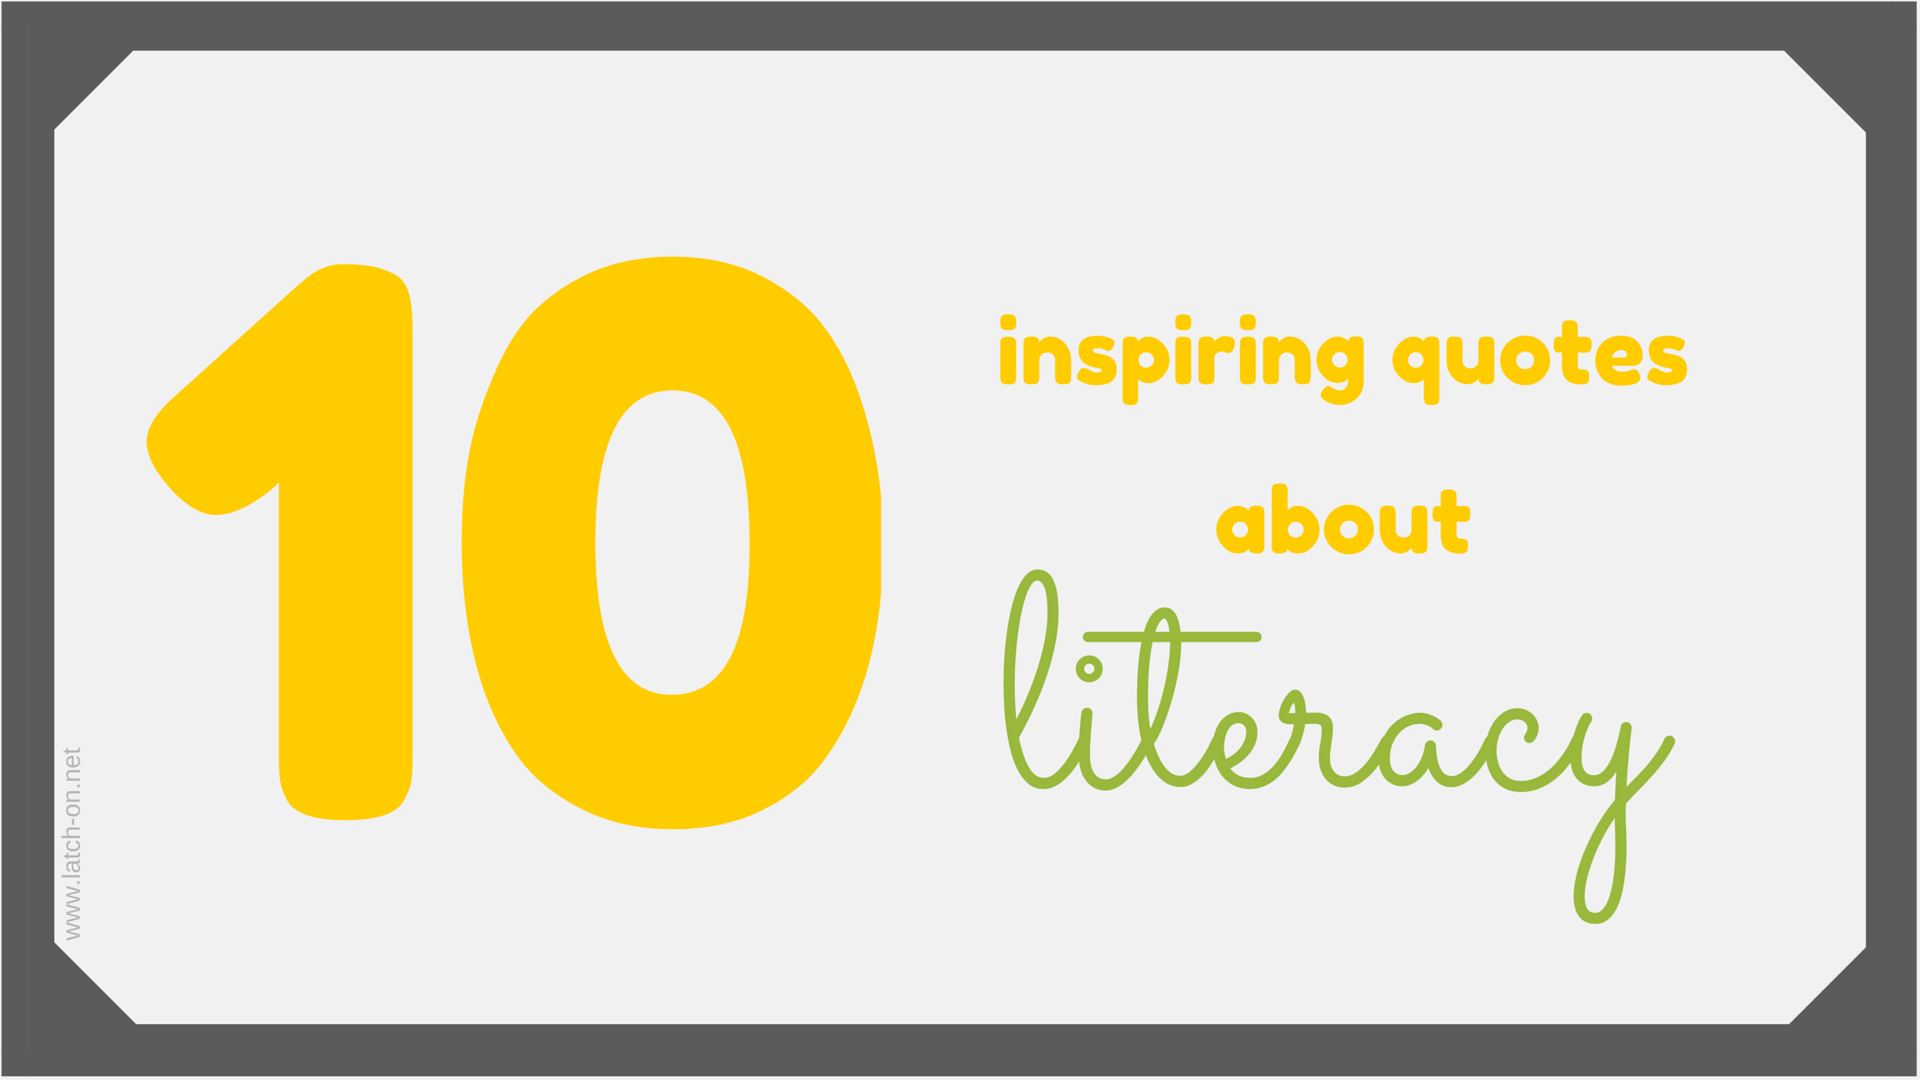 inspiring quotes about the power of literacy 10 inspiring quotes about the power of literacy